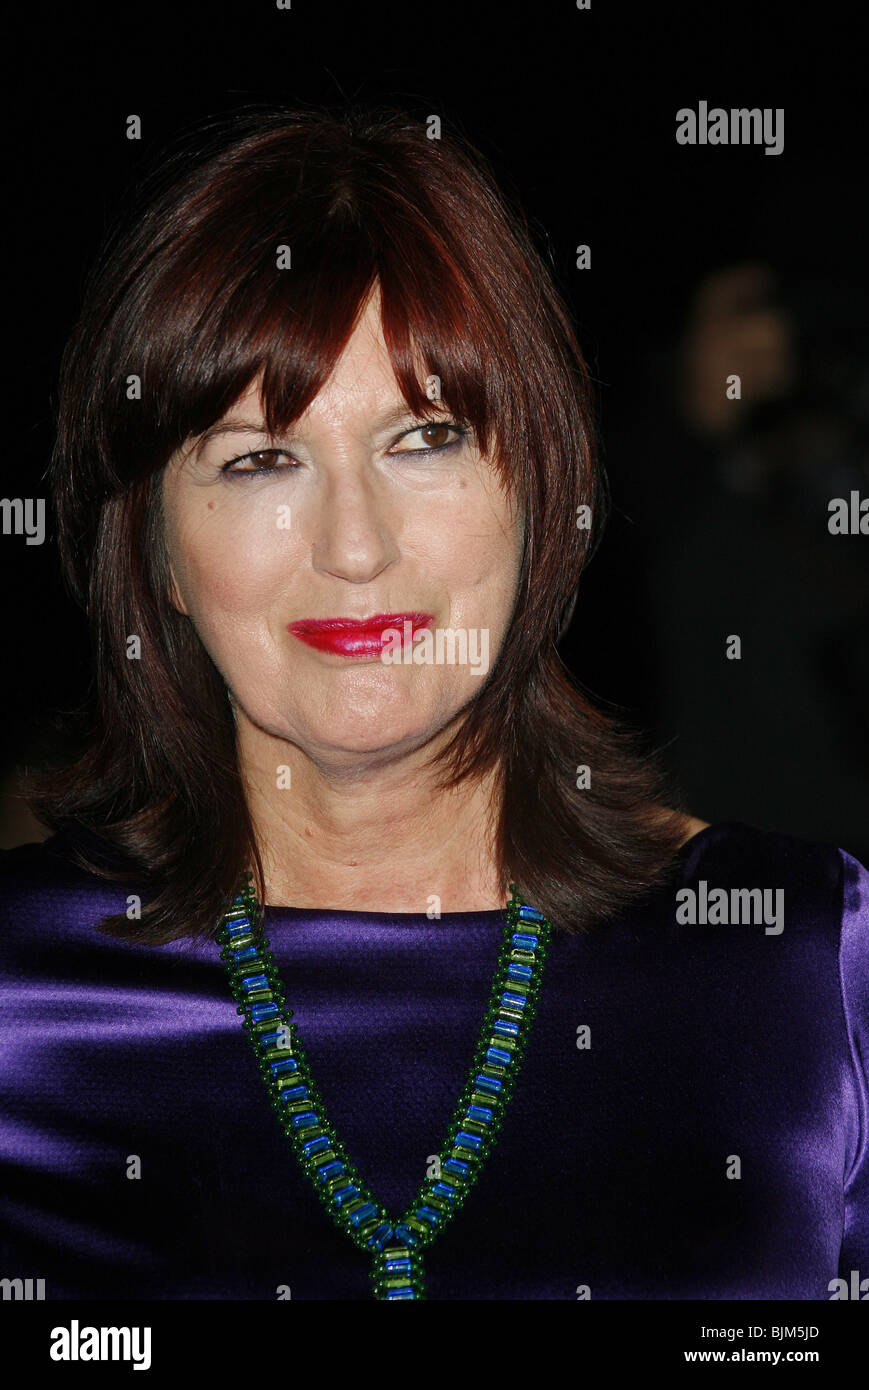 JANET STREET PORTER NATIONAL TELEVISION AWARDS 2007 THE ROYAL ALBERT HALL LONDON ENGLAND 31 October 2007 - Stock Image